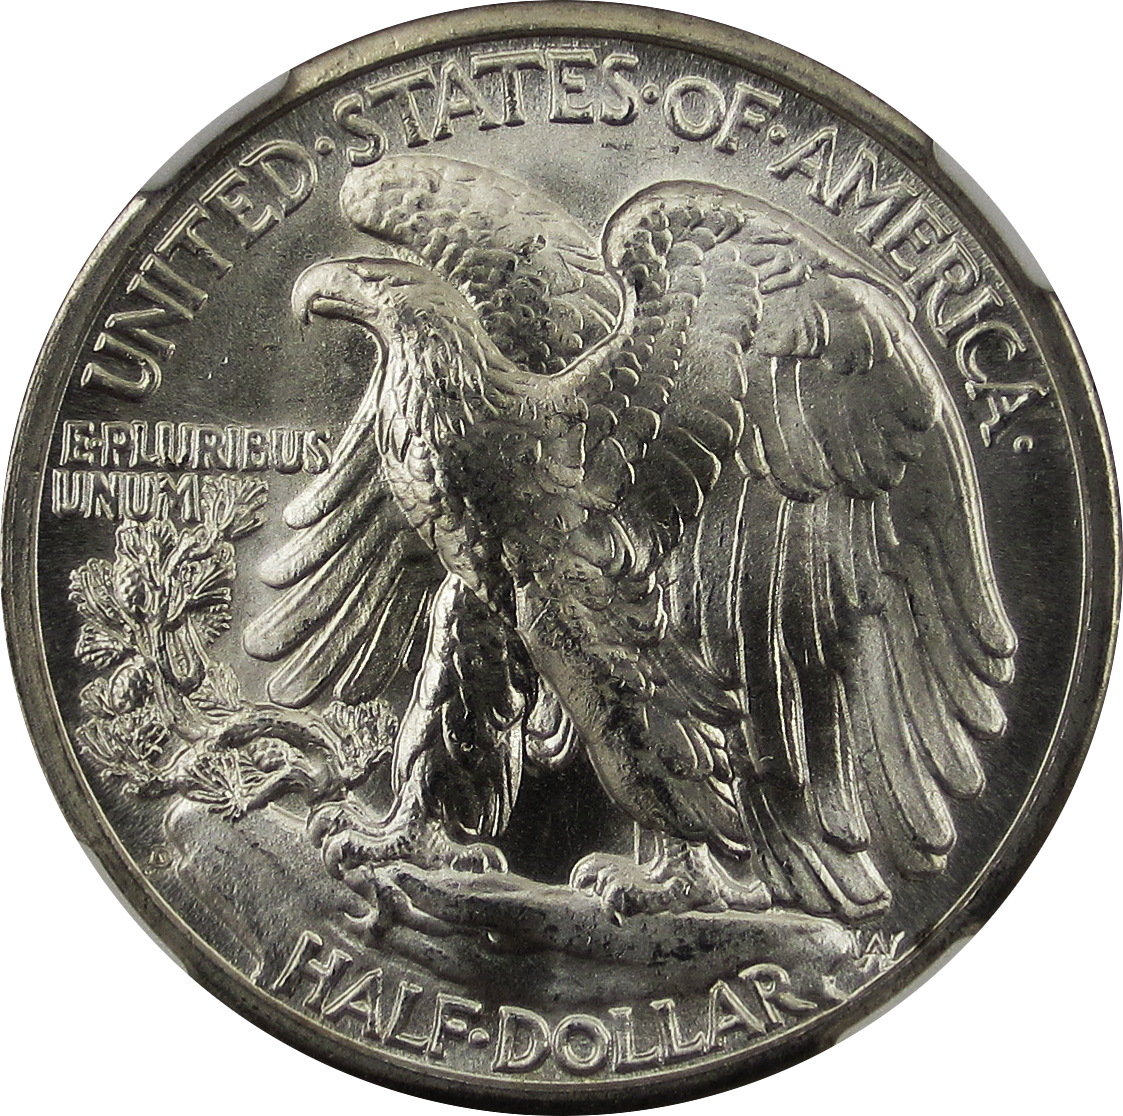 Walking Liberty Half Dollar 1945D Reverse weinman2